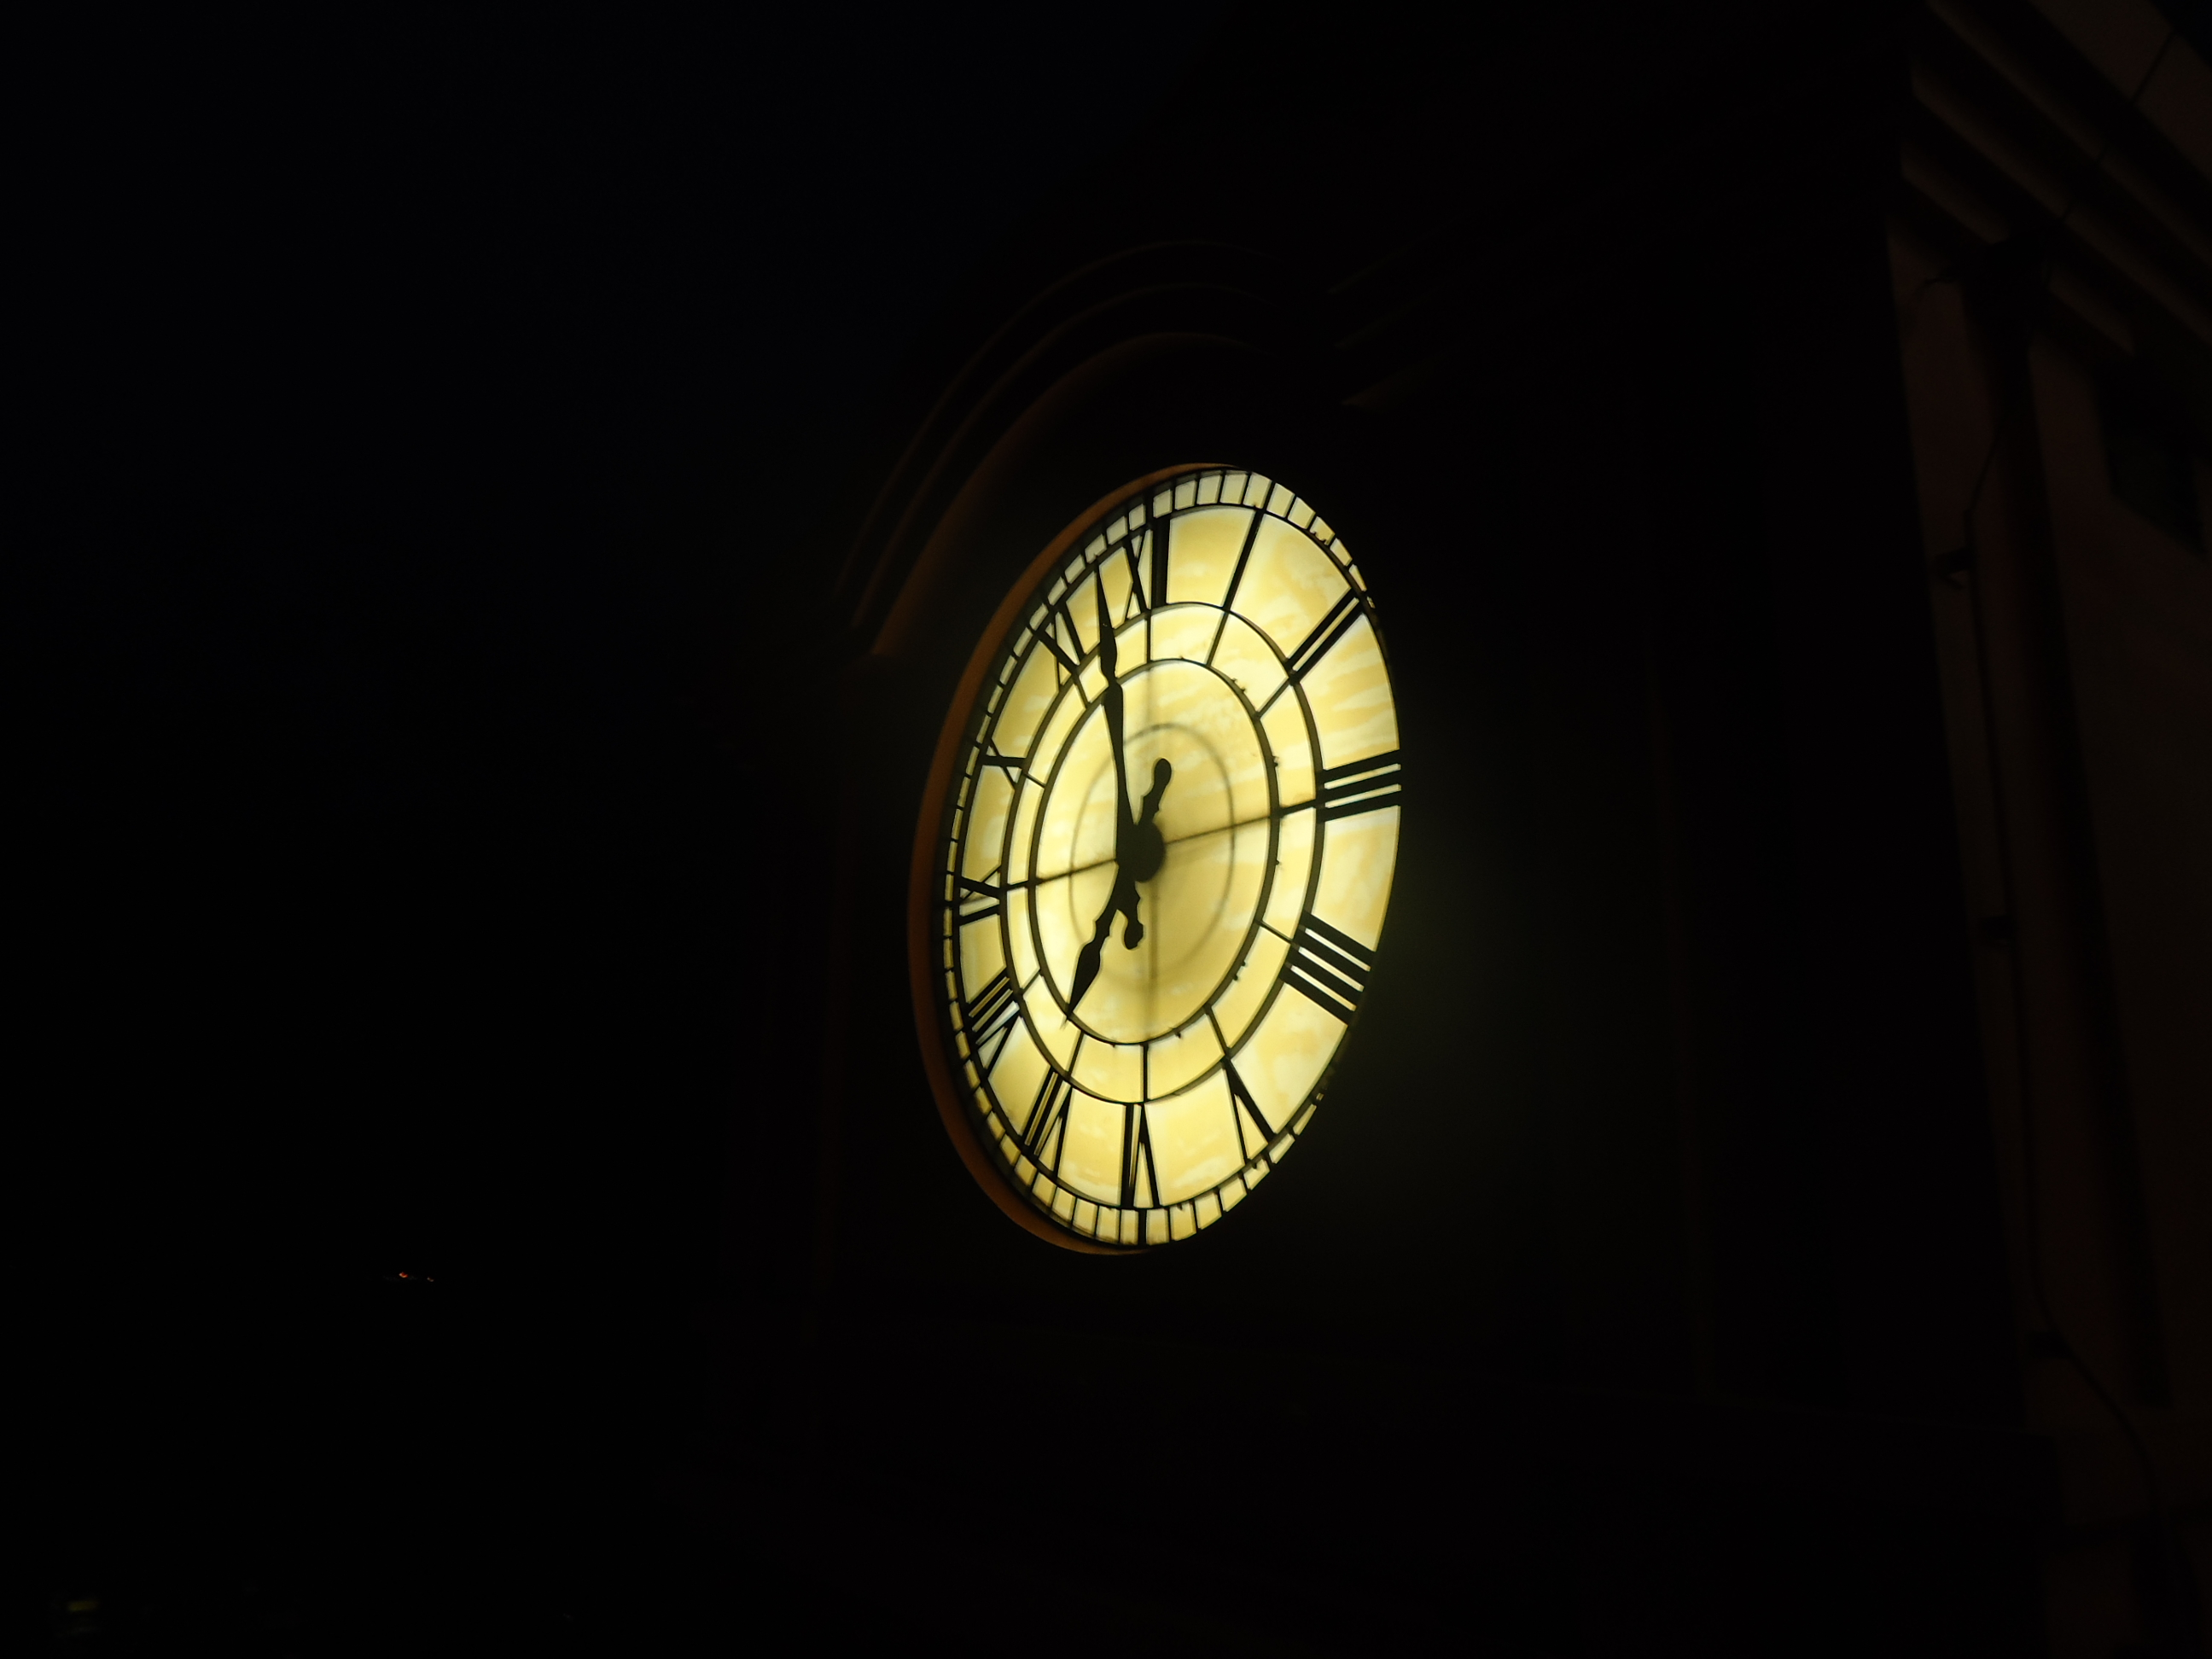 file clock tower clock in night jpg wikimedia commons. Black Bedroom Furniture Sets. Home Design Ideas